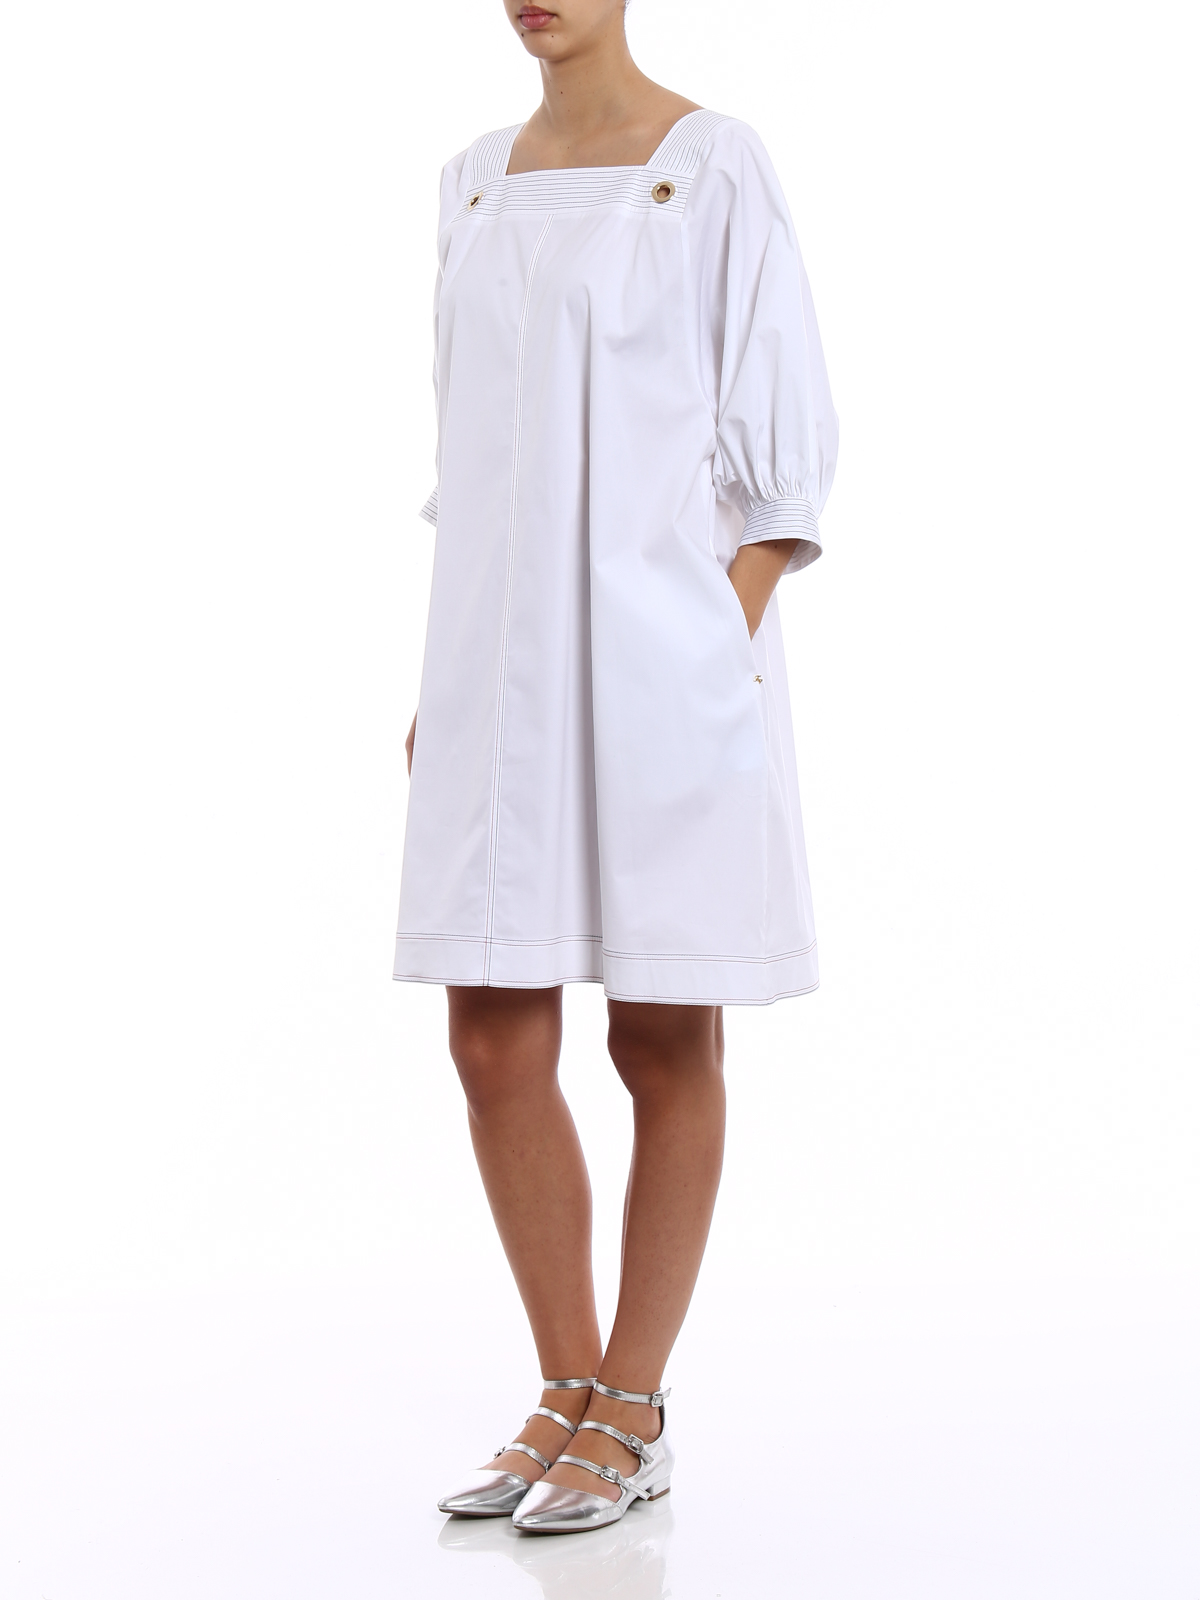 White dress with top-stitching details Fay Cheap Sale 100% Guaranteed Discount Aaa vgzd45fJYa